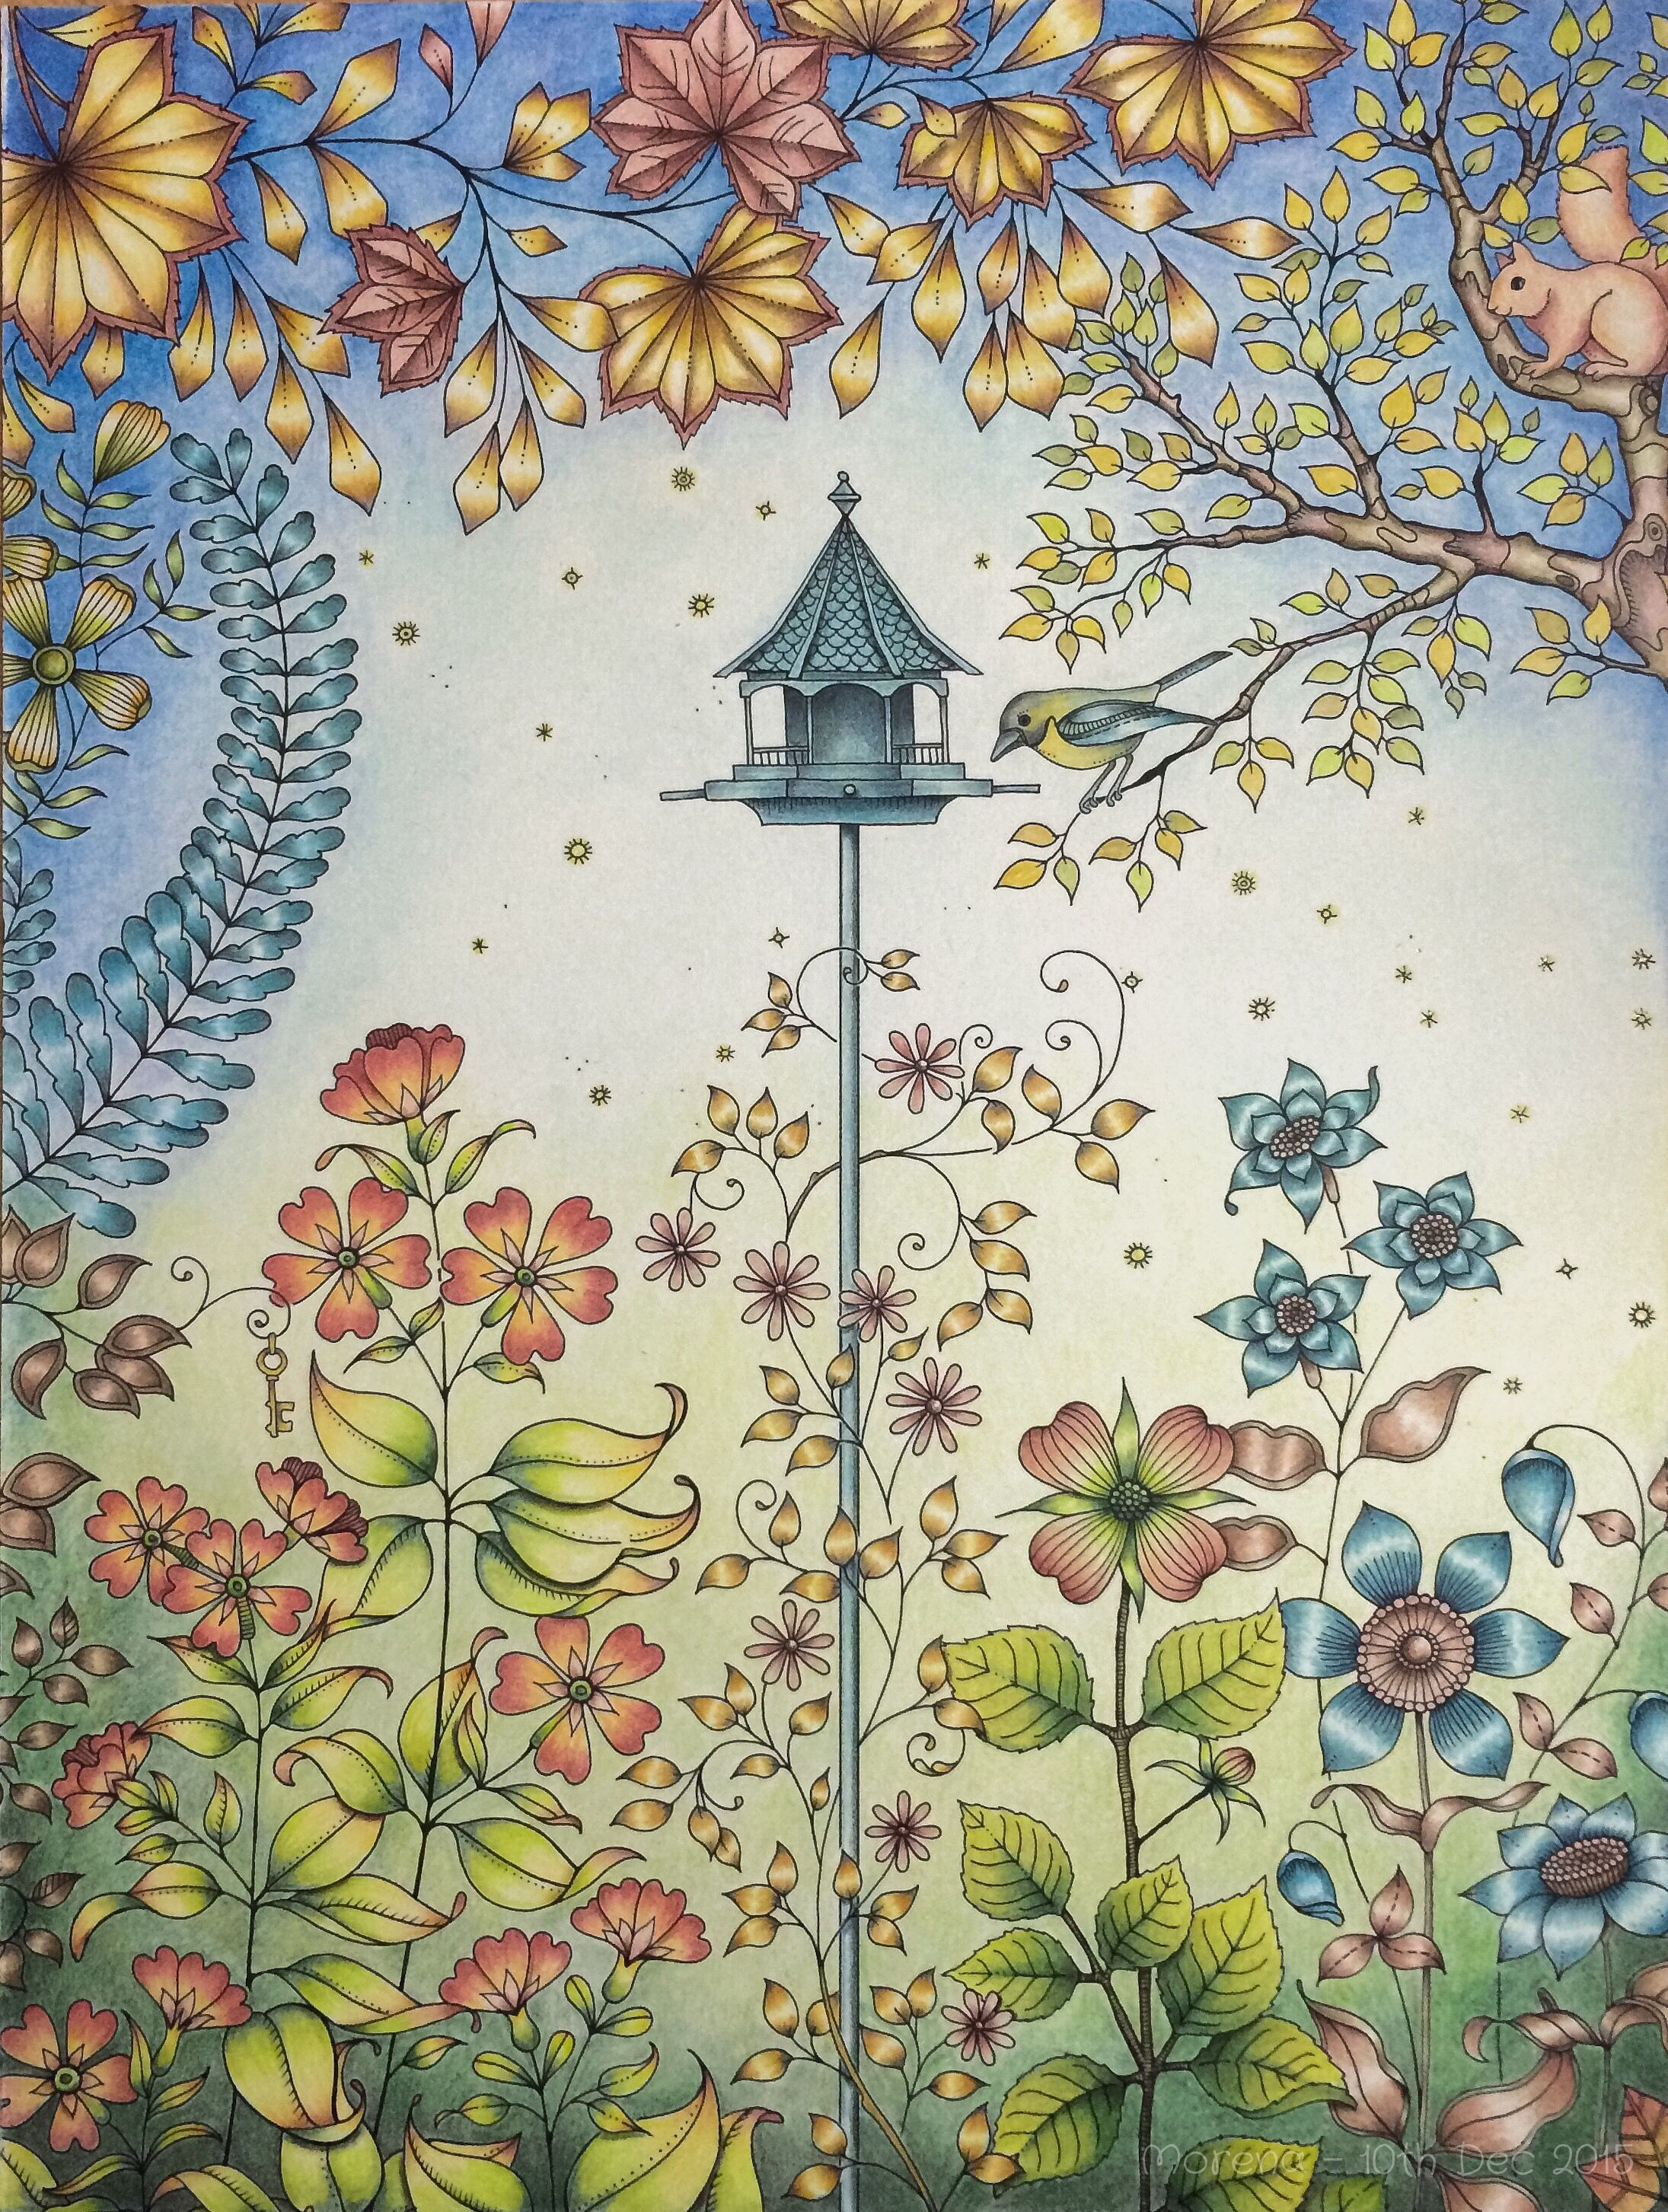 Is This Colouring Books Secret Garden Artists Ed Coloured By Morena Vajak Johannabasford MyCreativeEscape